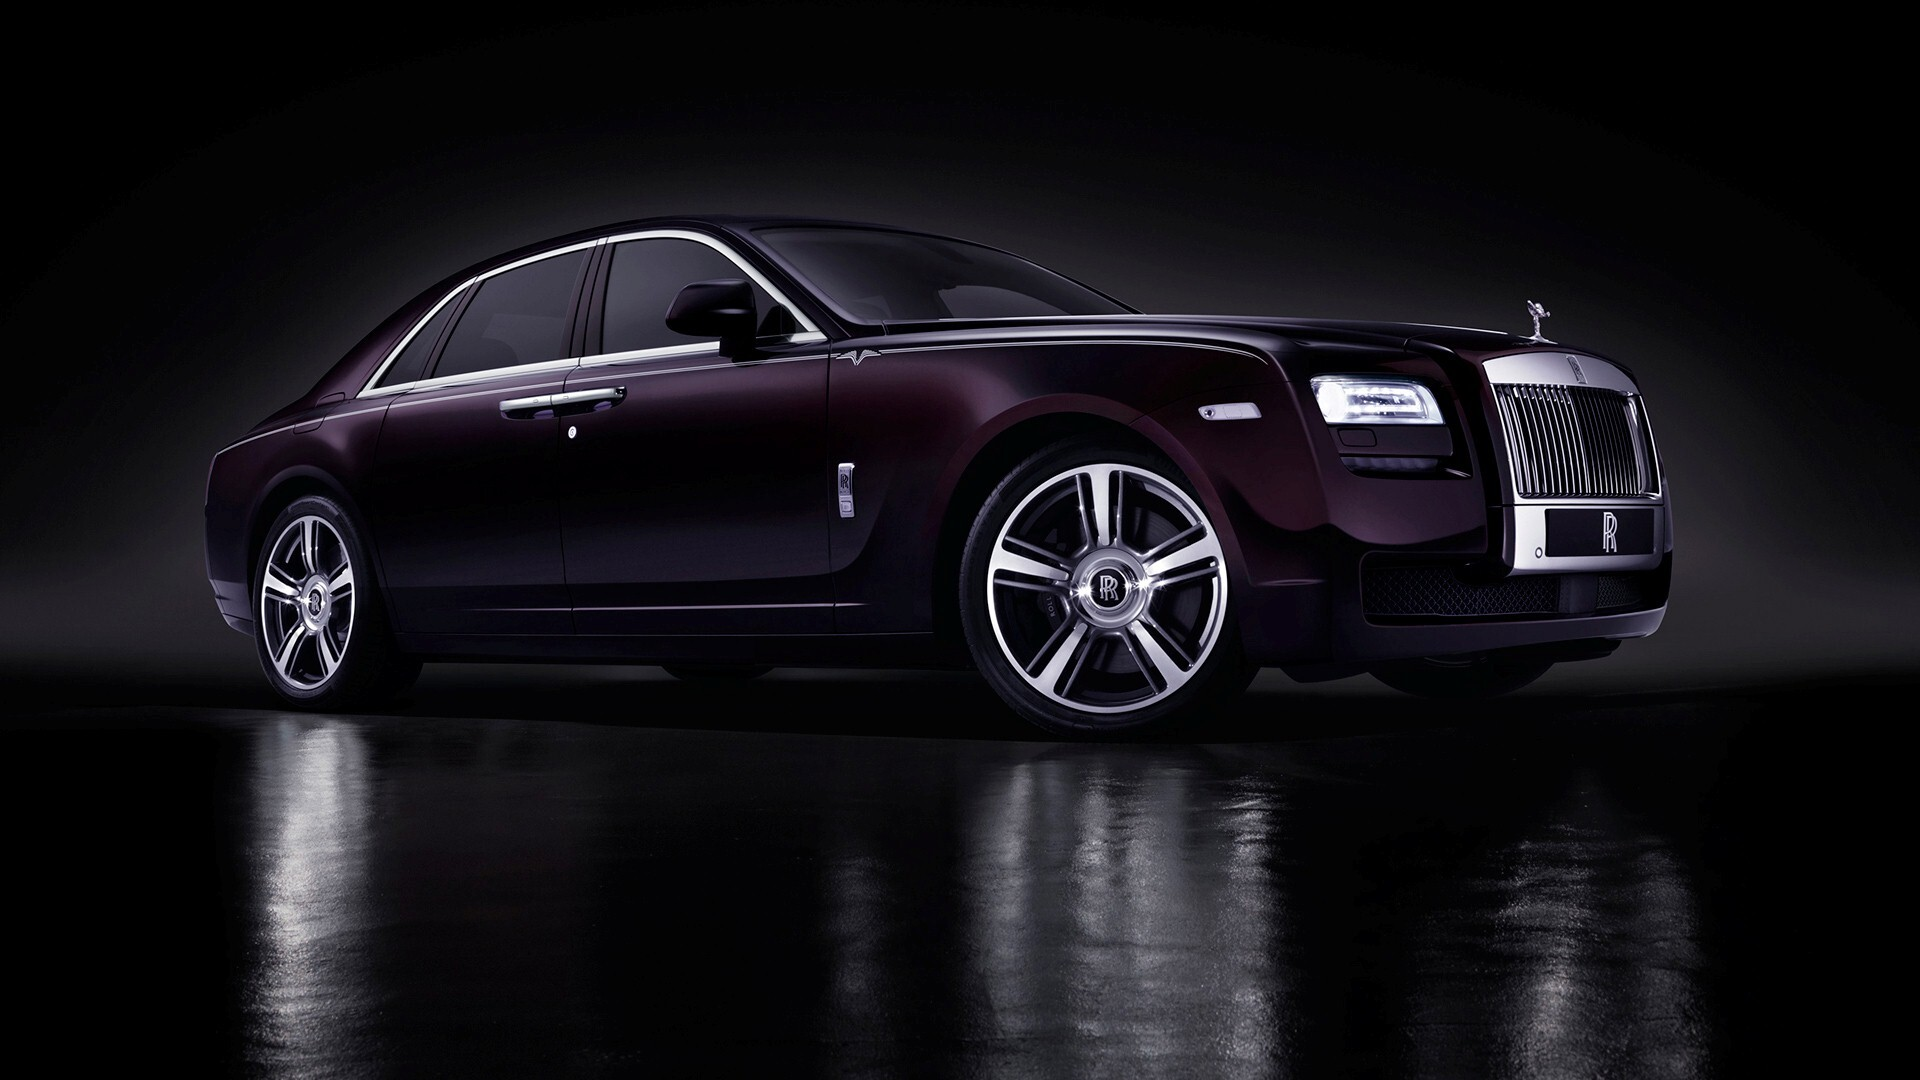 2015 rolls royce ghost royal car hd wallpaper hd wallpapers rolls royce wallpapers voltagebd Gallery